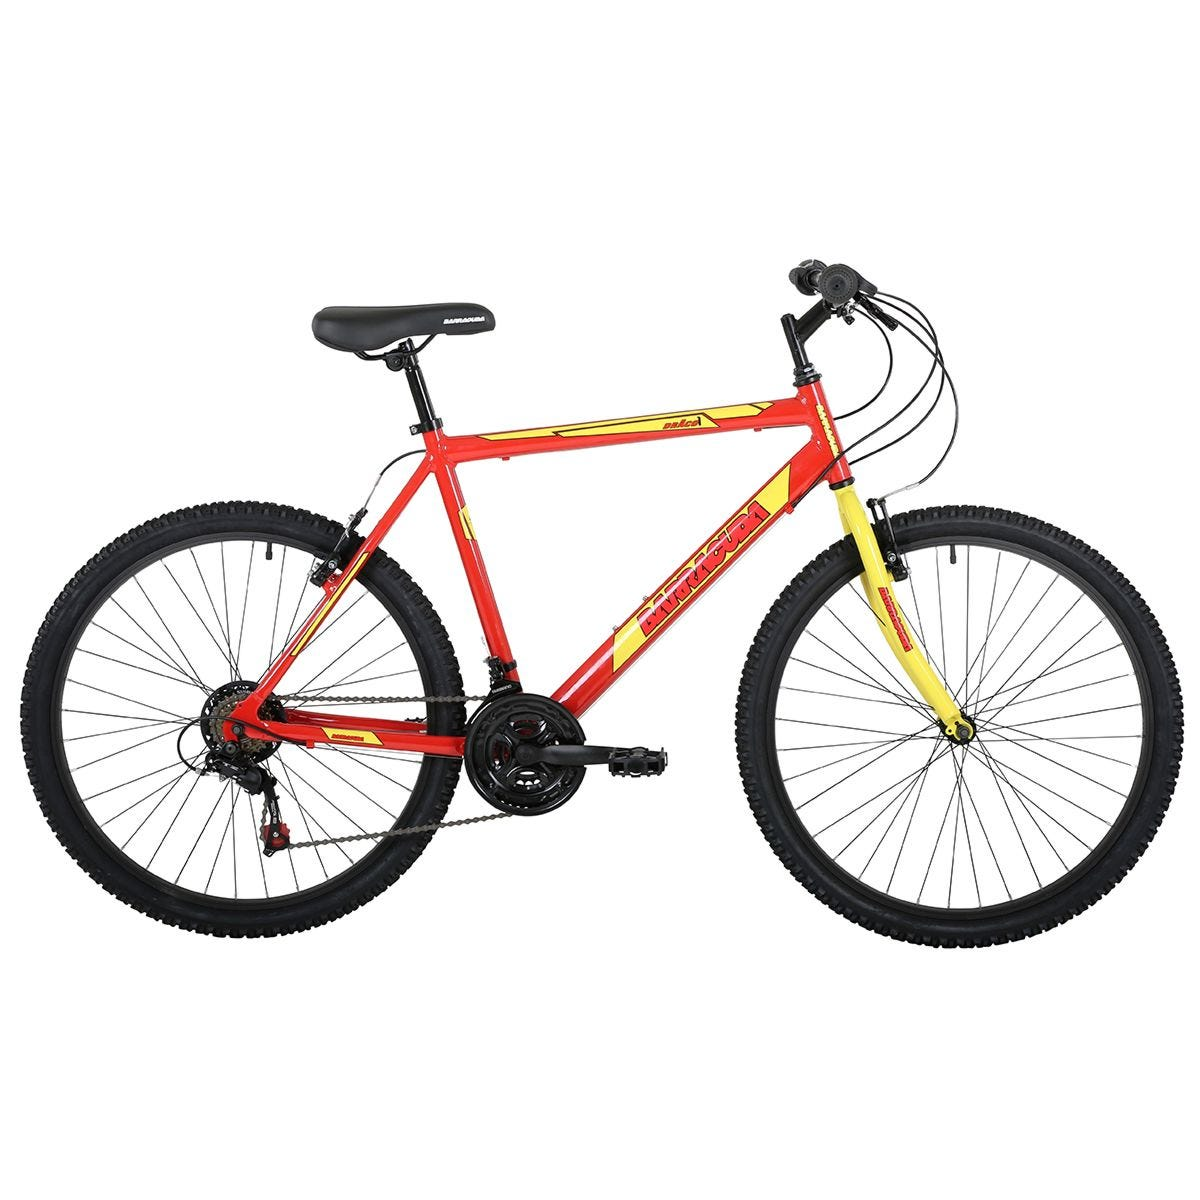 Barracuda Draco 1 26 Inch Wheel 18 Speed Mountain Bike - Red/Yellow